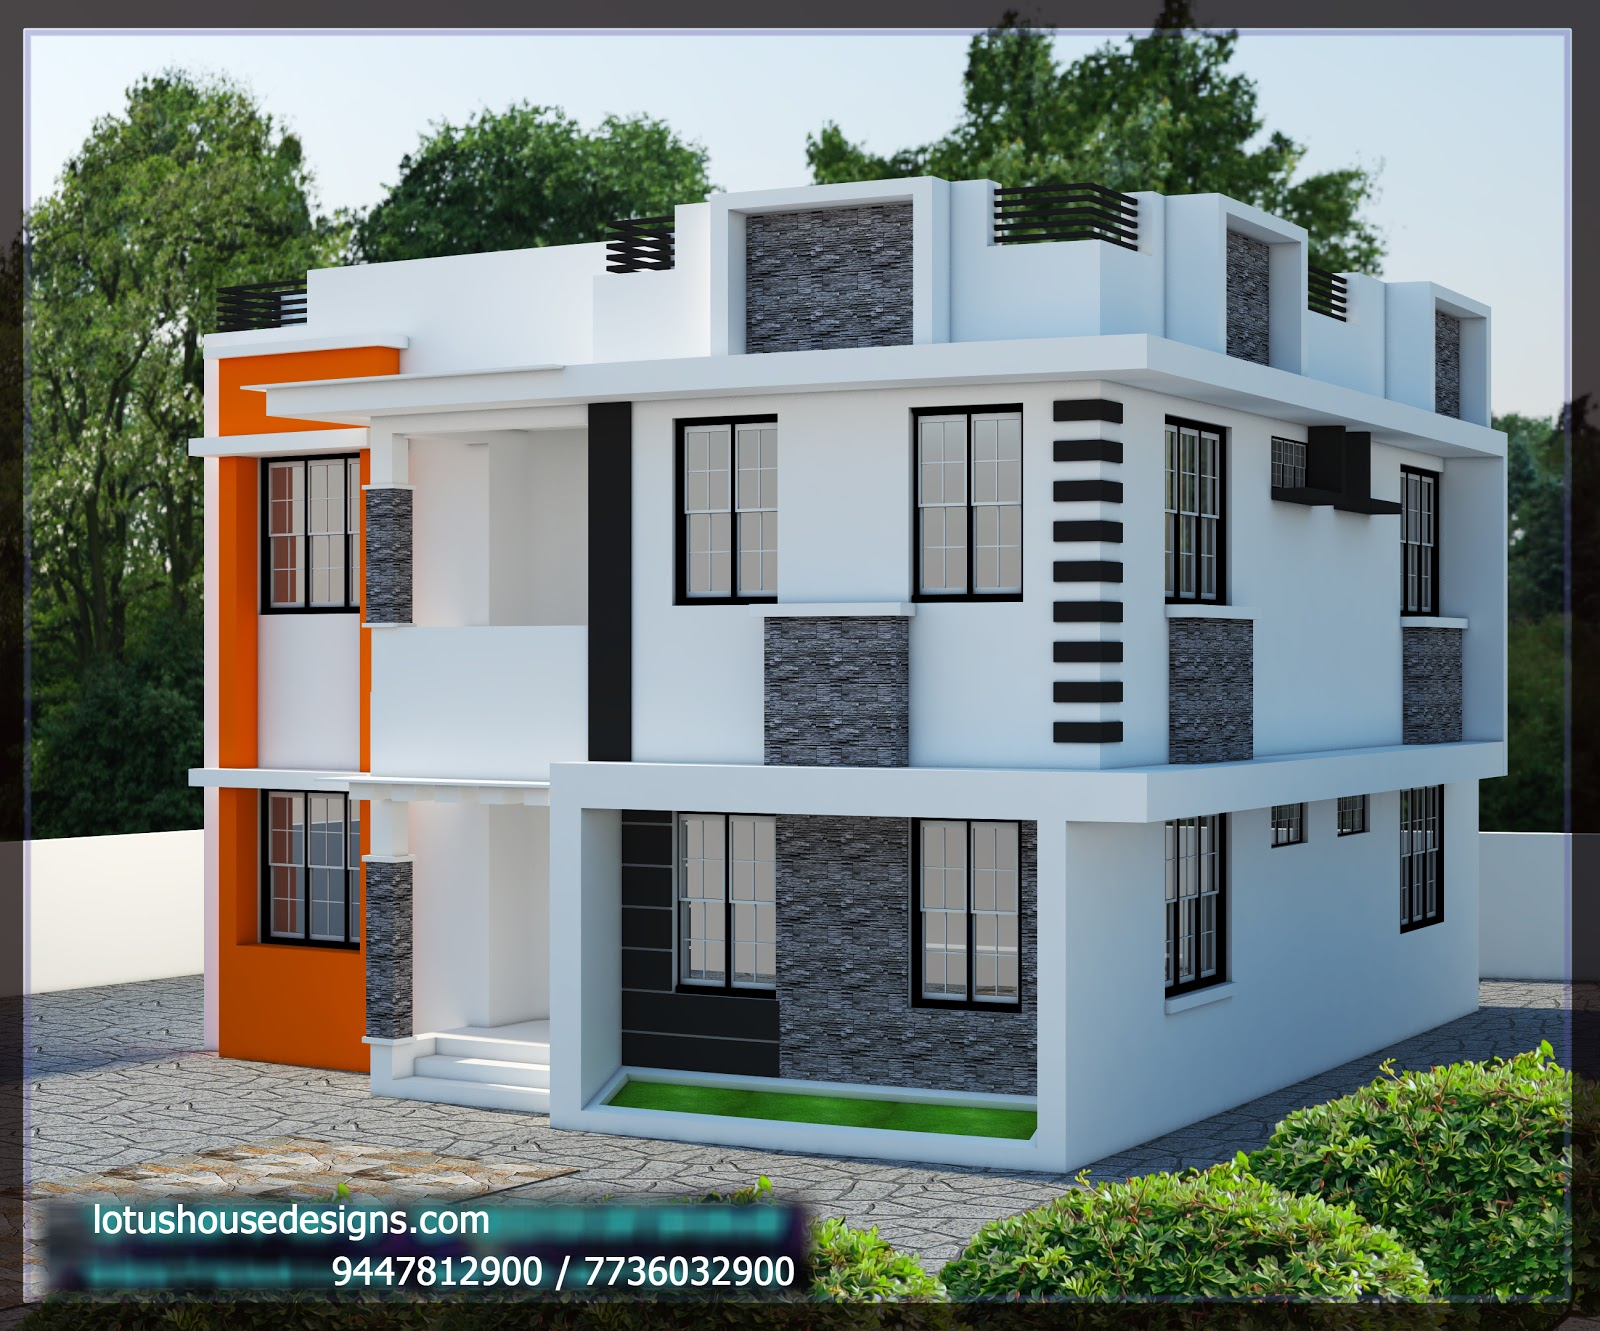 Style home design of 2127 sqft which can be finished in less than 43 lakhs rs specifications ground floor 1200 sq ft sitout